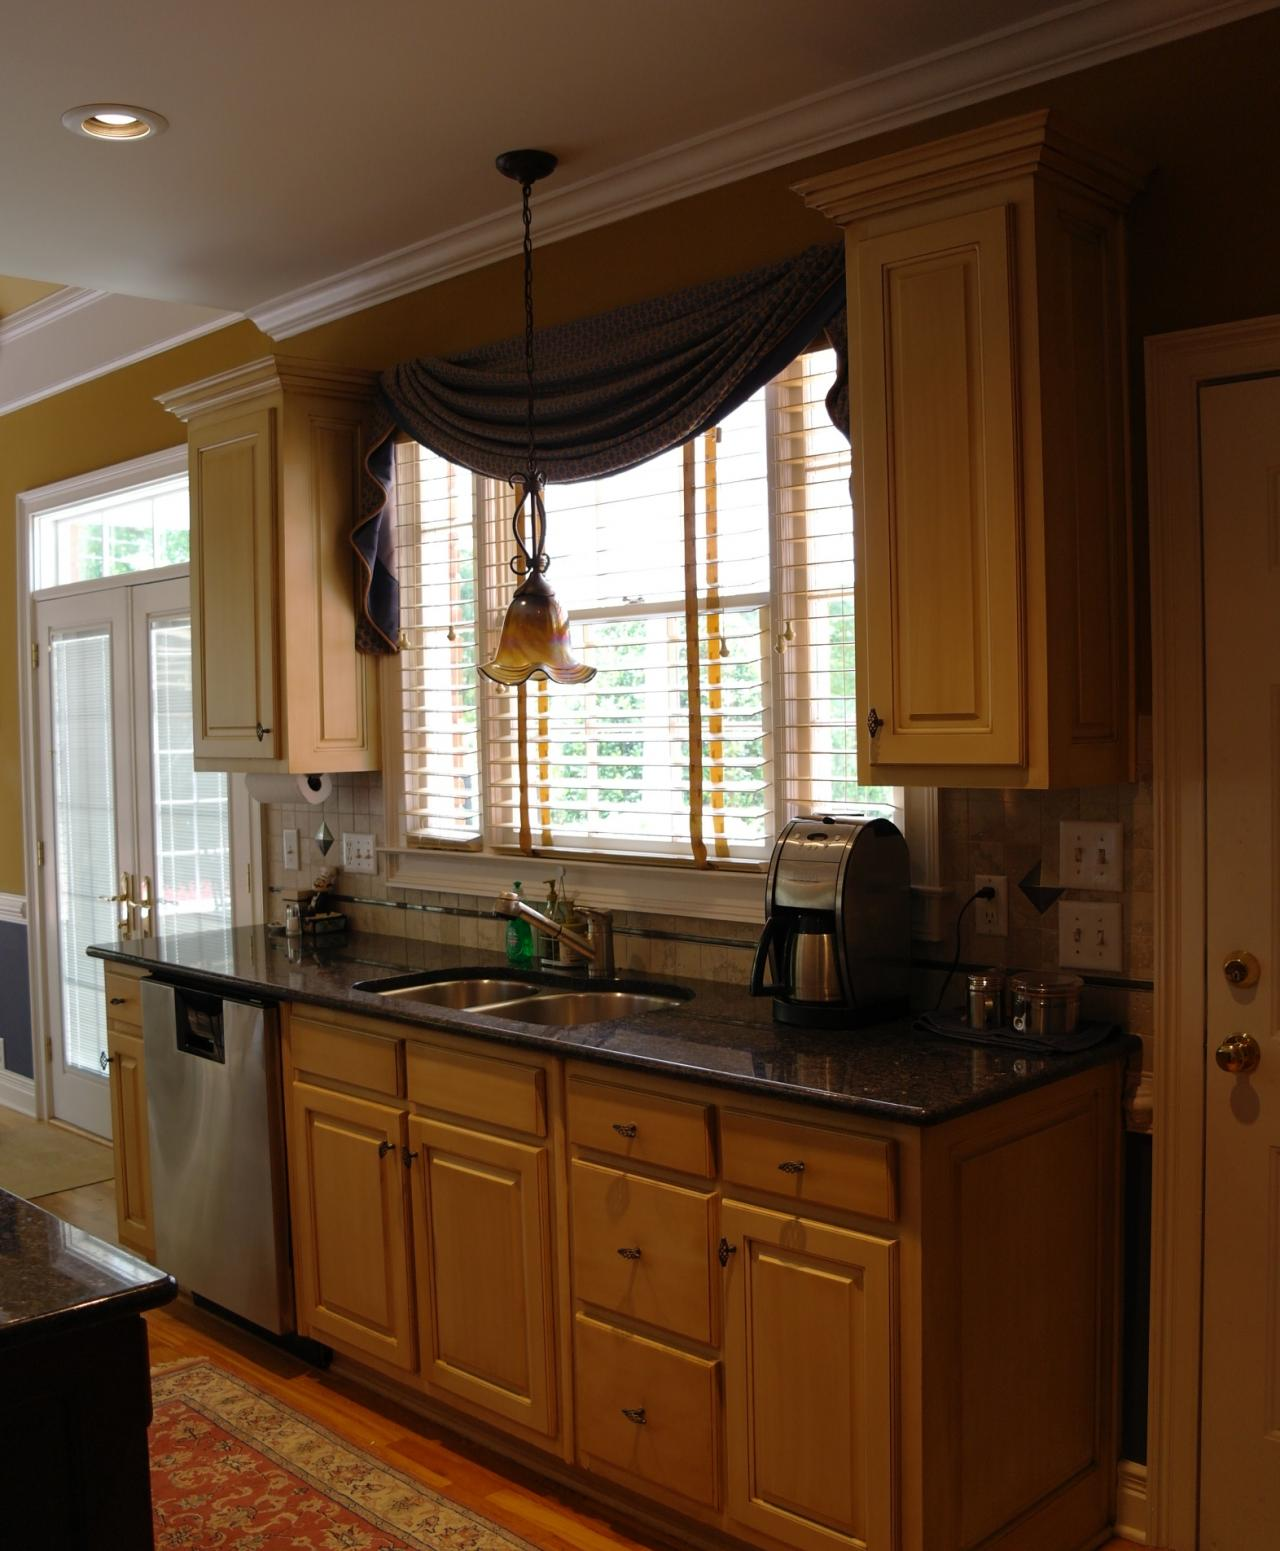 Refinishing Melamine Kitchen Cabinets: Tag CloudCabinet Refinishing